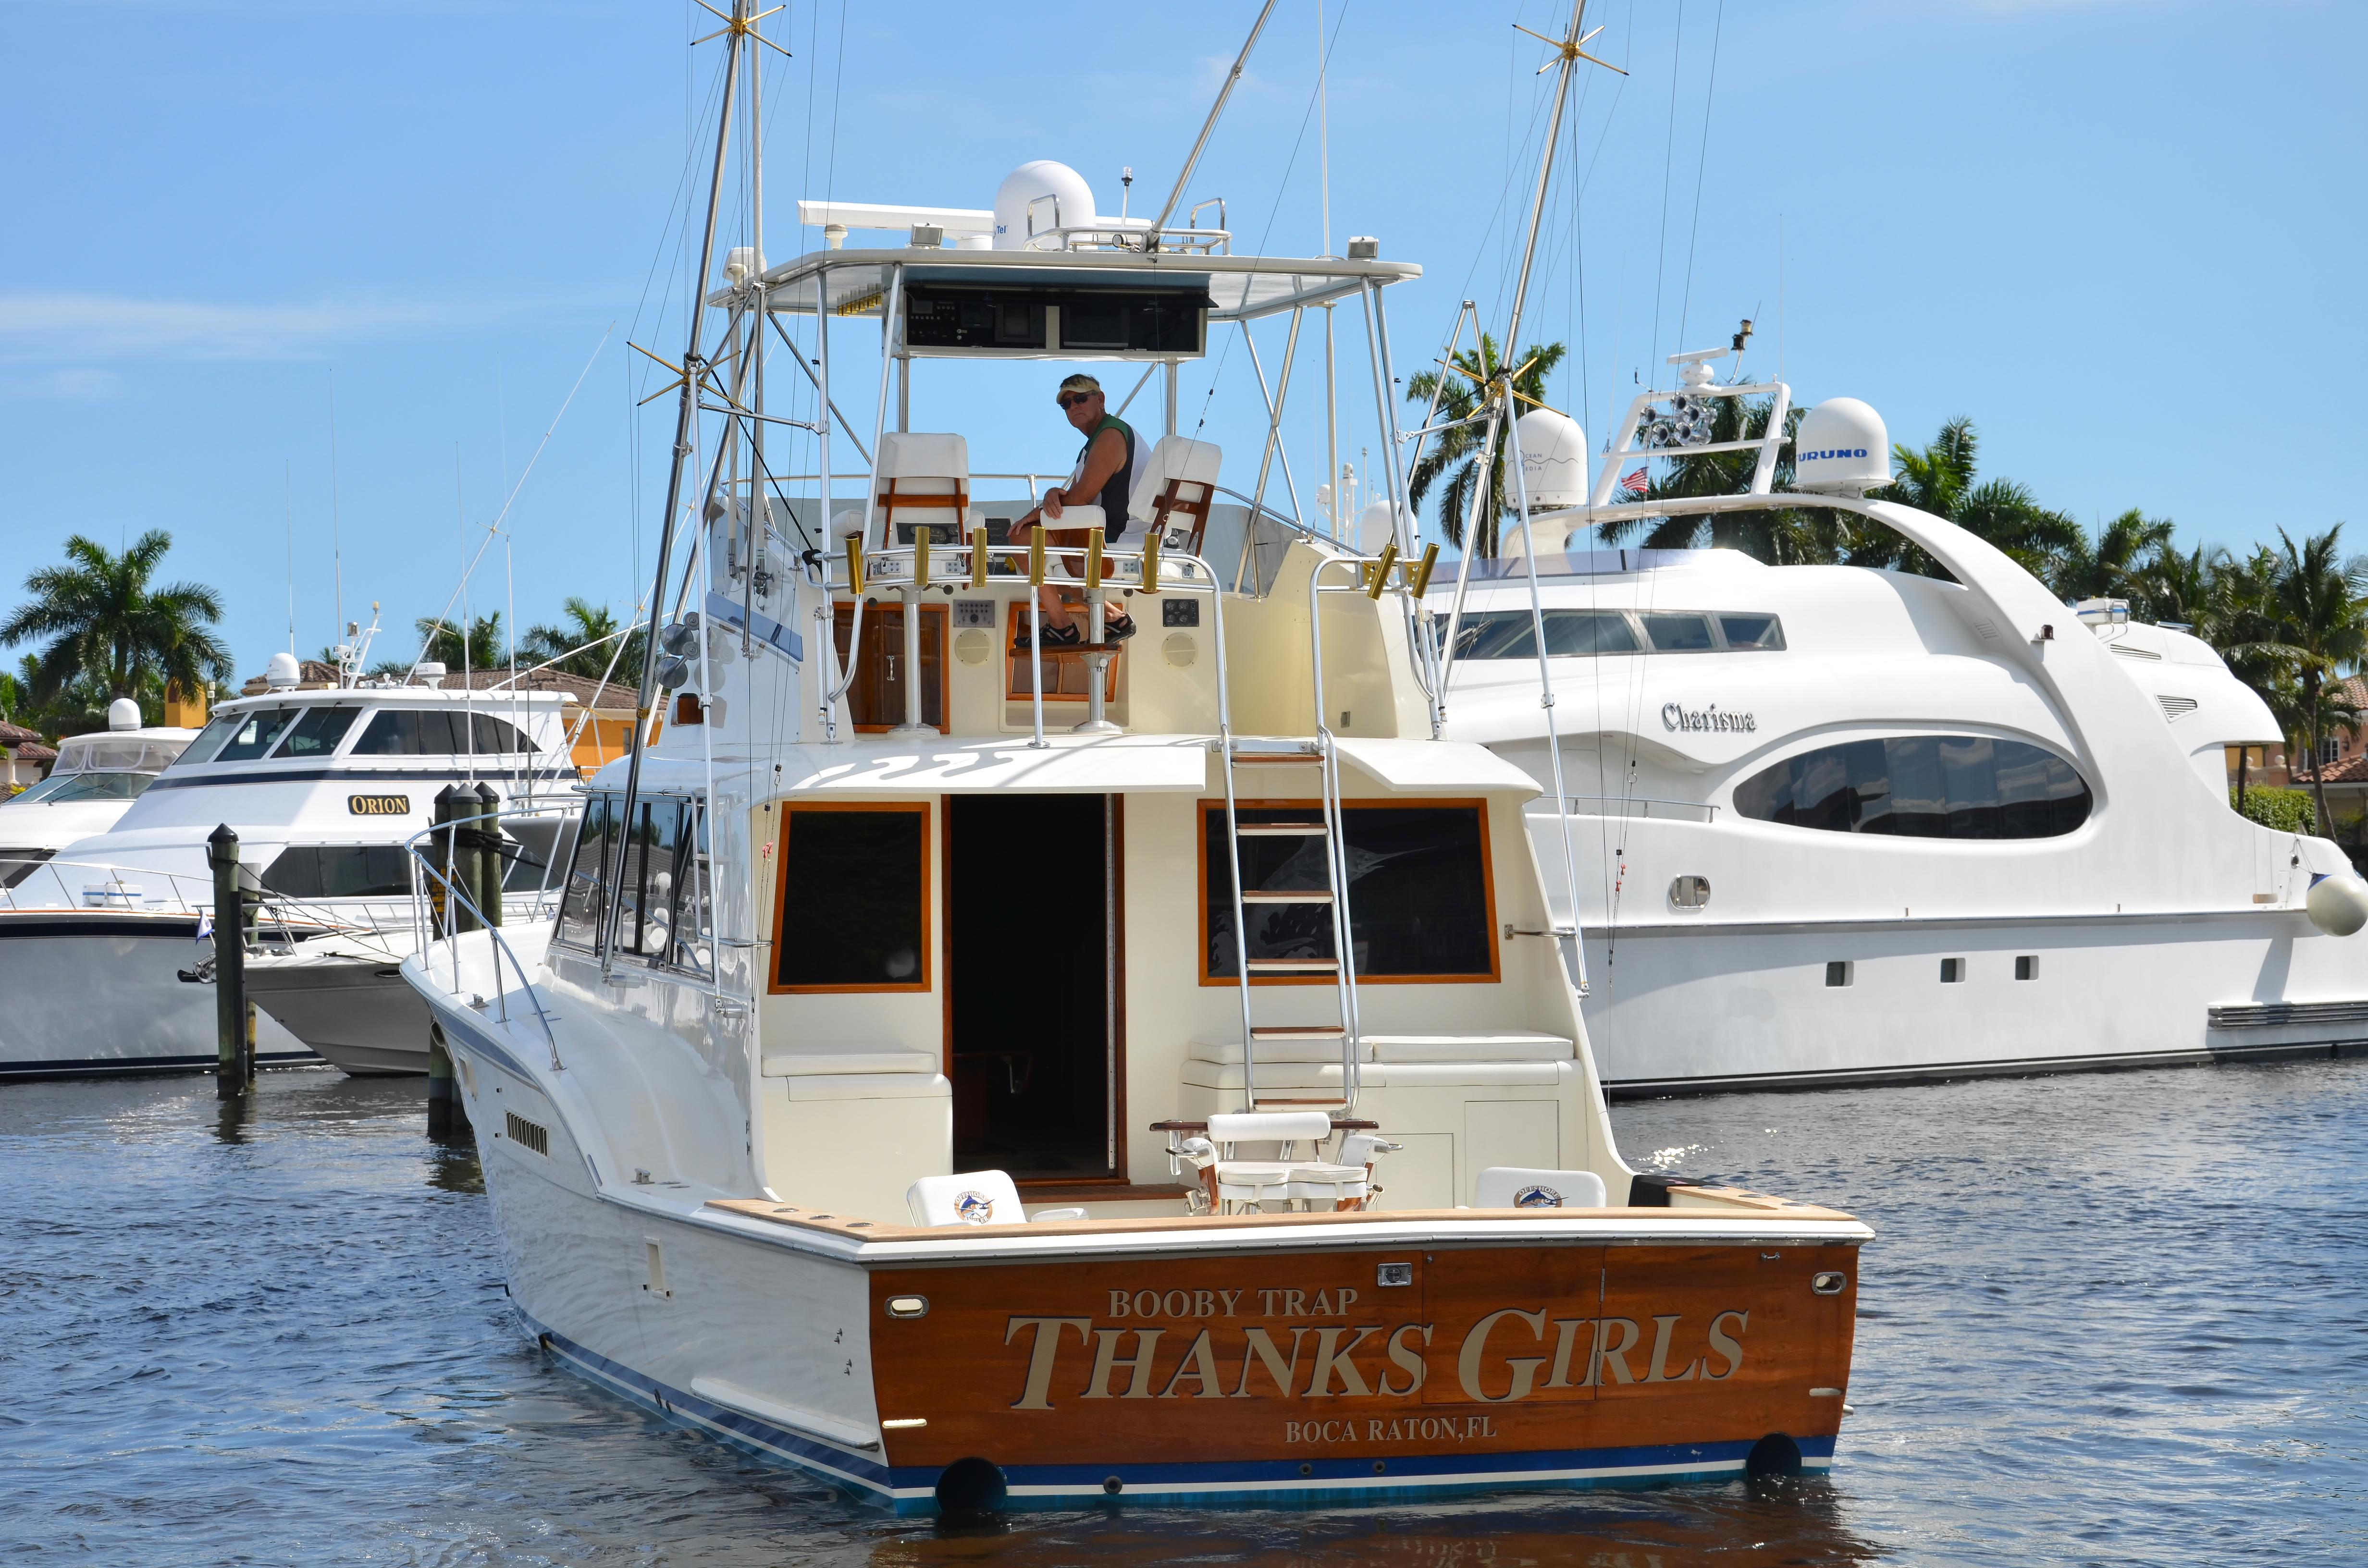 hatteras girls Rent captain's cape girl, a oceanfront nc vacation rental browse photos, floorplans, rates, and availability, and book your hatteras vacation online today.